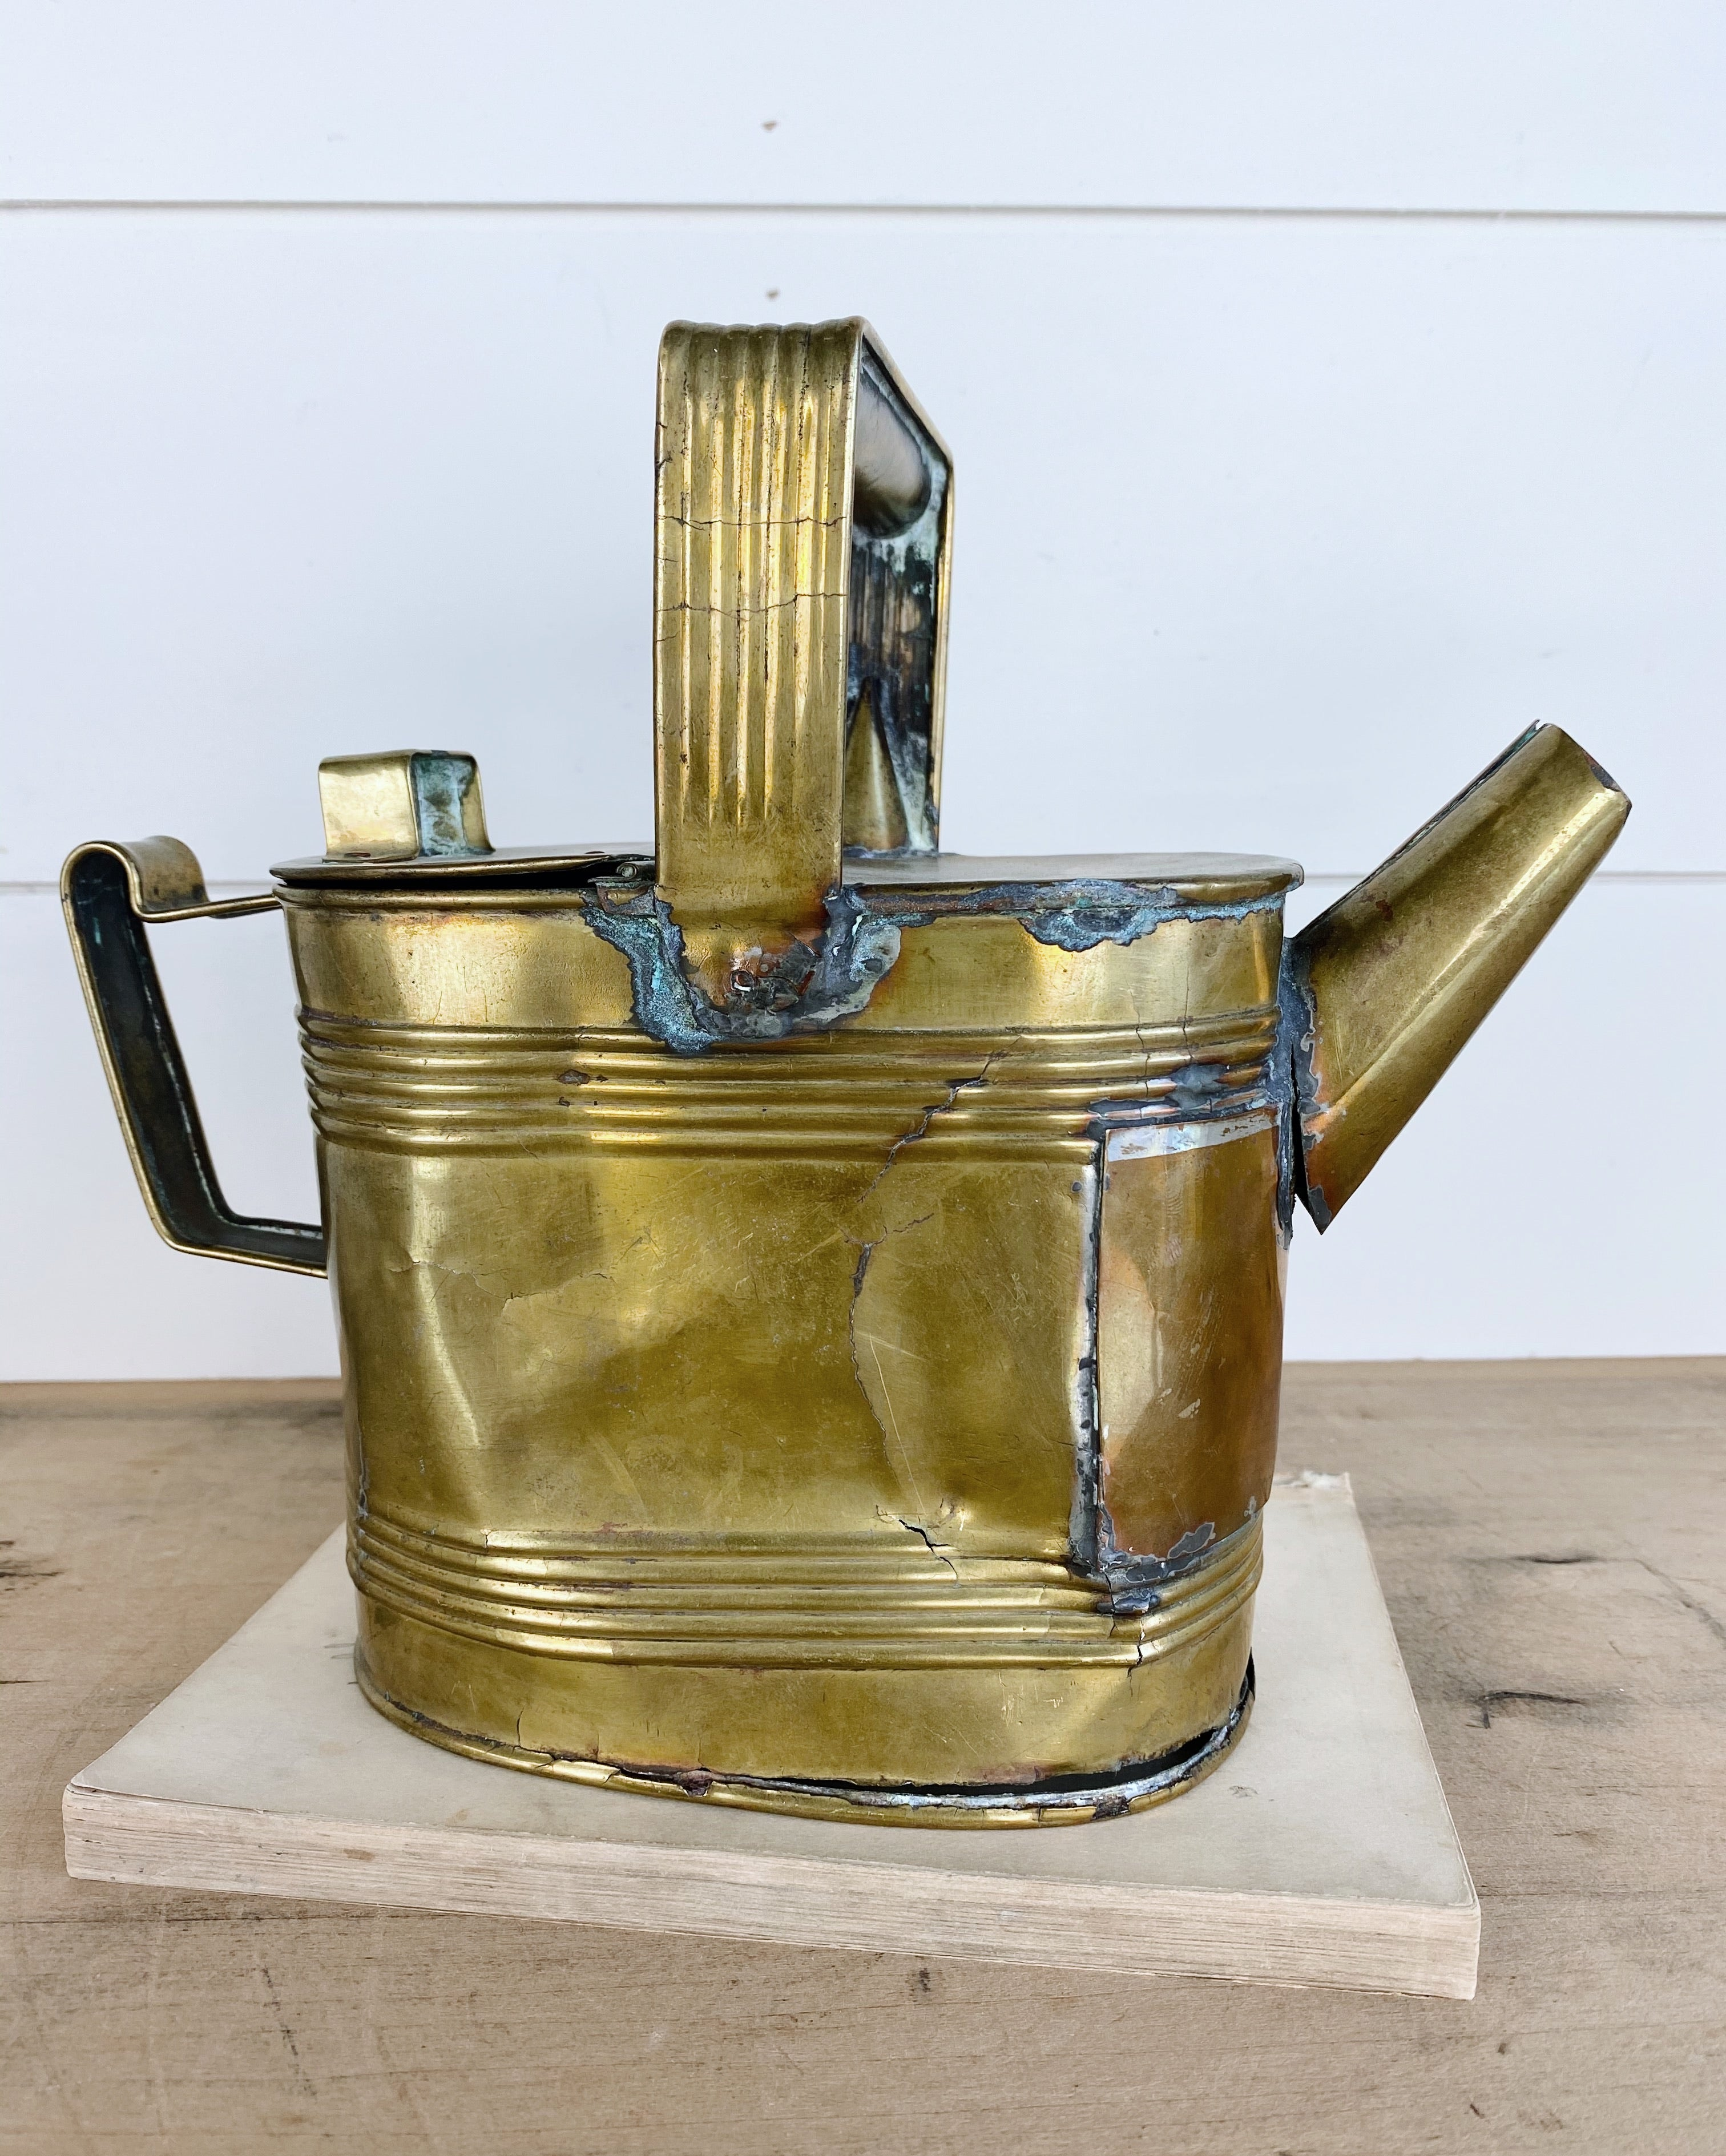 Vintage Brass Kettle